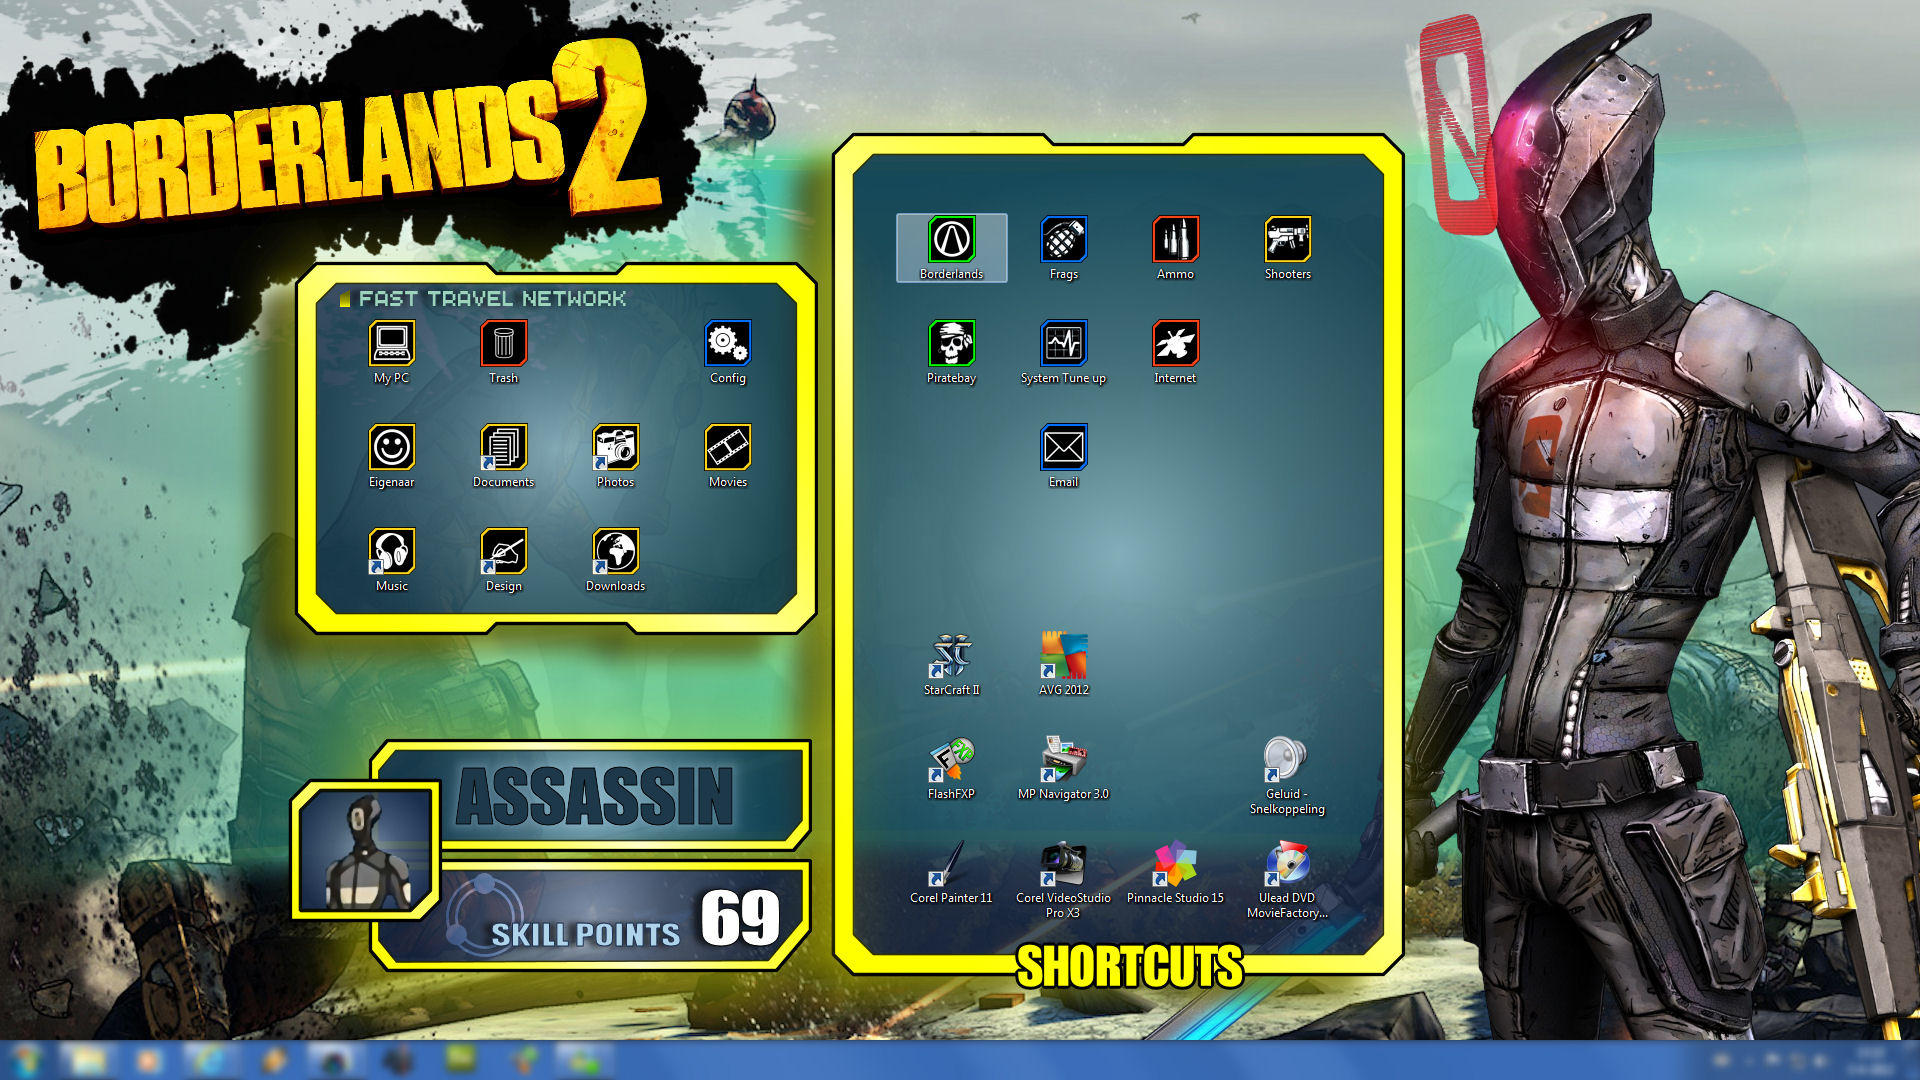 Borderlands 2 wallpapers pack zer0 ui by mentalmars on deviantart borderlands 2 wallpapers pack zer0 ui by mentalmars voltagebd Image collections